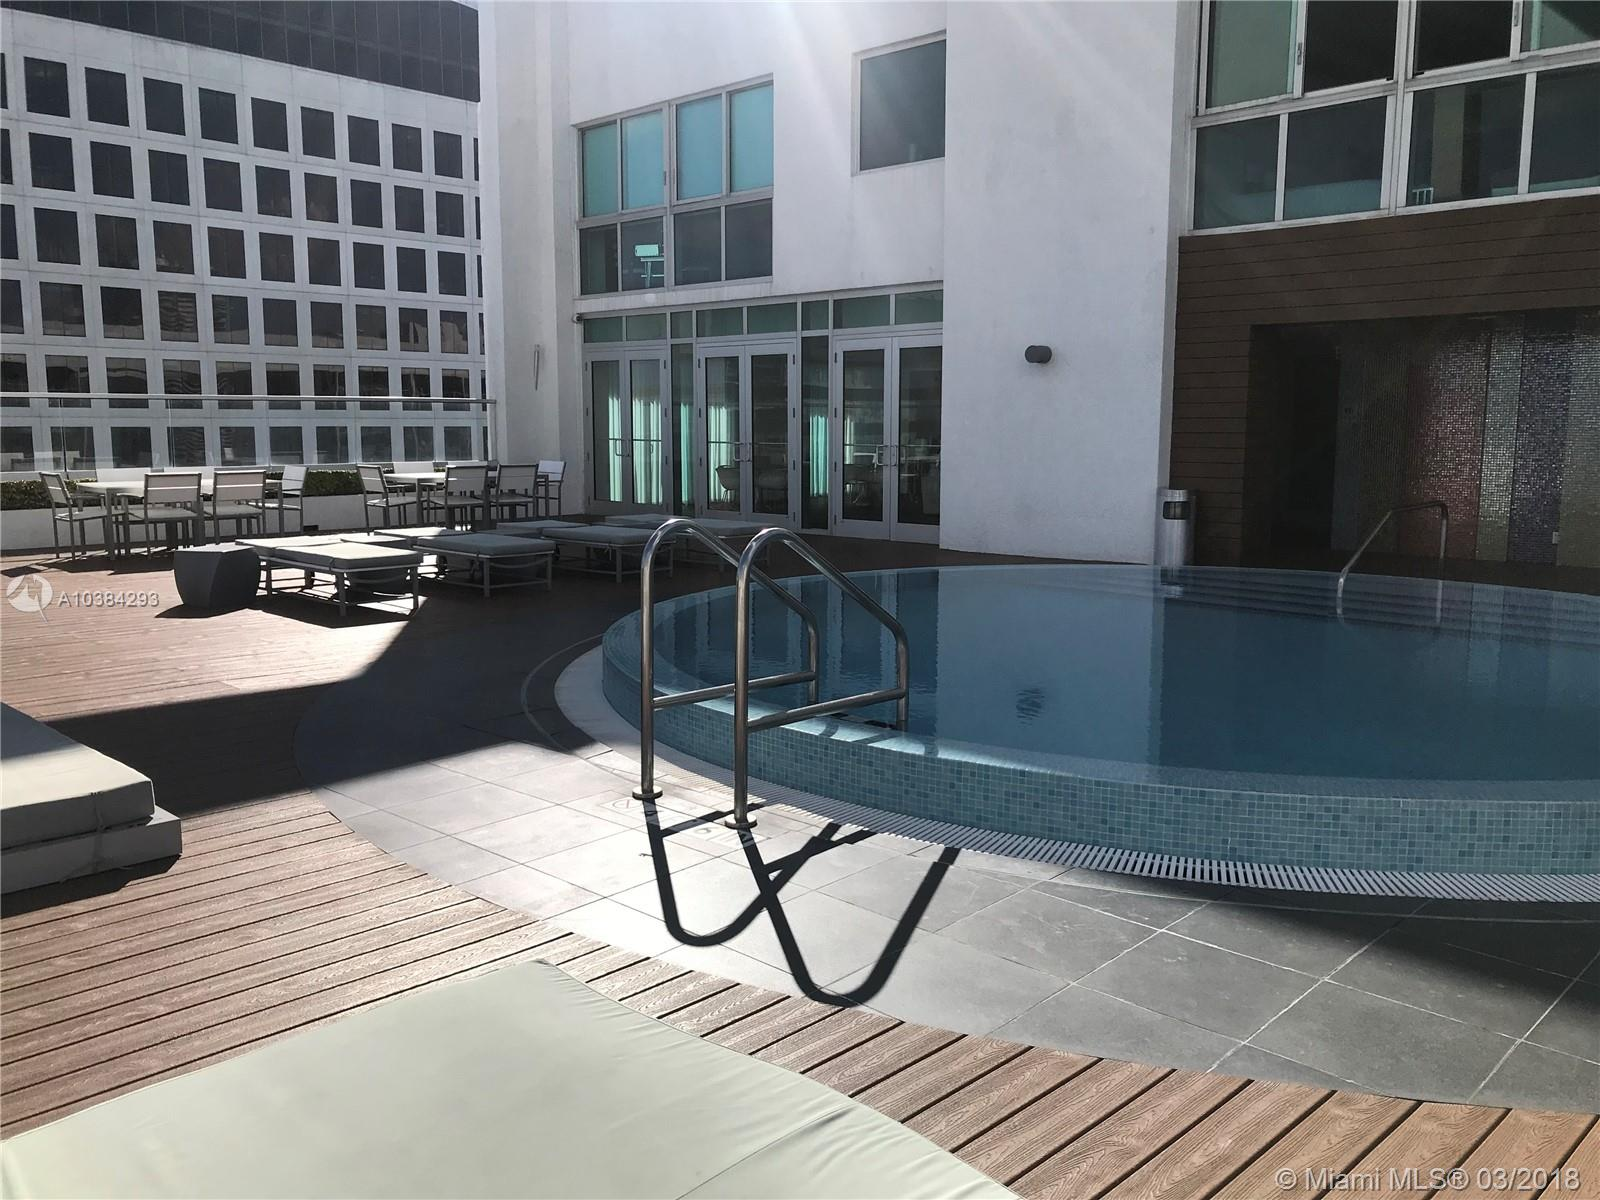 500 Brickell Avenue and 55 SE 6 Street, Miami, FL 33131, 500 Brickell #2502, Brickell, Miami A10384293 image #17